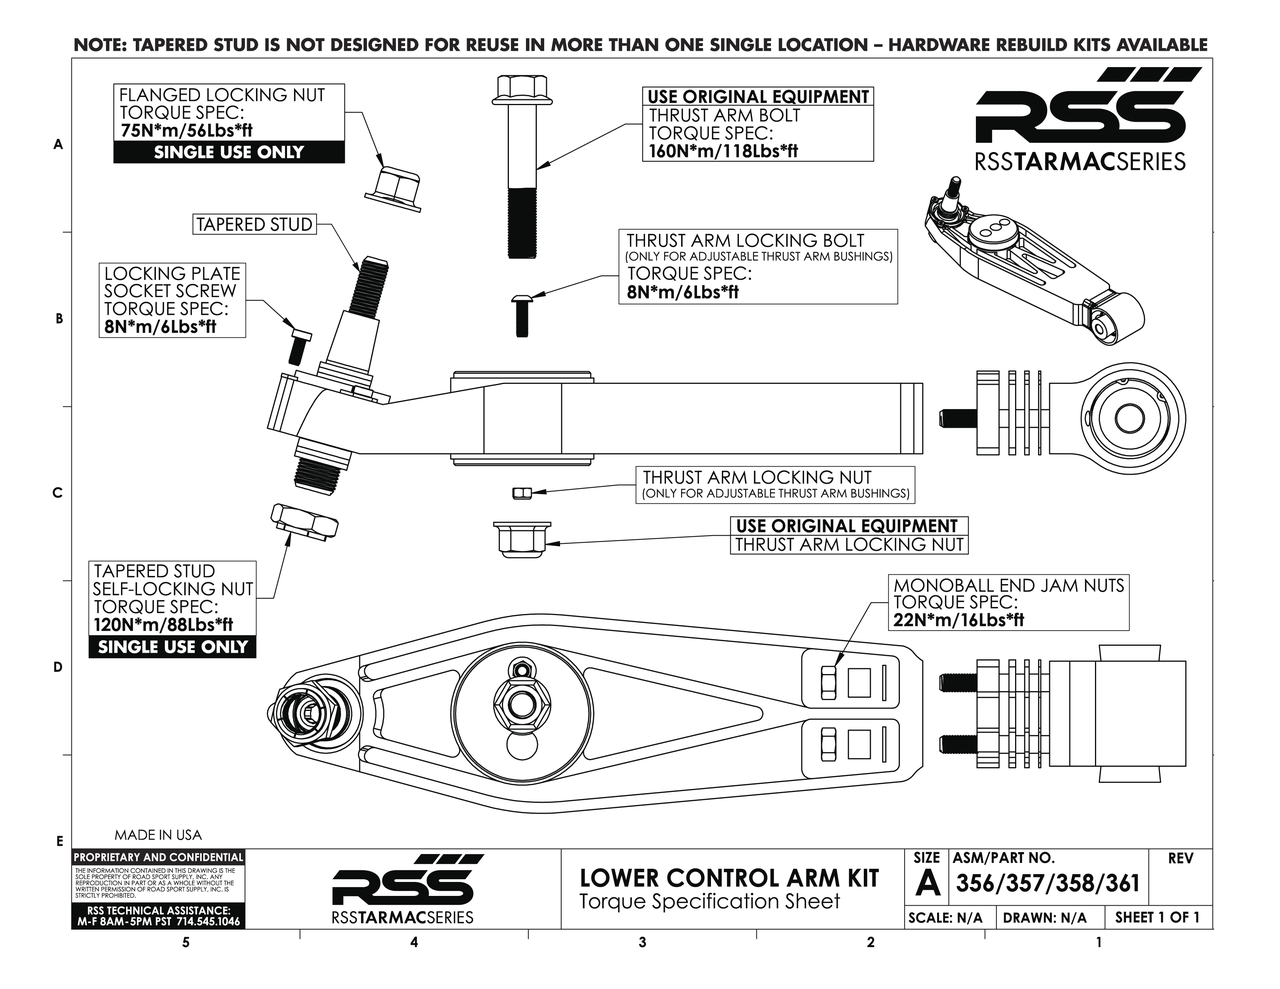 """#356 RSS TARMAC SERIES 2-PIECE COMPLETE LOWER CONTROL ARM KIT - Front Axle (Pair of 2). Fits front axle 986, 996, 997 GT3/GT3RS, and 997 GT2. Includes: Adjustable/Non-Hydraulic Replacement Thrust Arm Bushings, 1mm/2mm/3mm/7mm Shims, Spherical Monoball Ends.   RSS Tarmac Series Motorsport Lower Control Arms are specifically engineered for use on lowered vehicles that have reduced travel struts/dampers If you need assistance in identifying your suspension type please contact us. For specific fitment information refer to the """"Chassis Fitment Guide and Lower Control Arm Fitment Notes"""" (See Images Below).  The RSS Tarmac Series – Motorsports Control Arms are designed for the Porsche driver who demands the absolute maximum in precision handling, feedback and control from their chassis. This system has been specially engineered to provide unmatched performance, quality, strength and serviceability. RSS Tarmac Series Control Arms address the performance related shortcomings of the OEM rubber mounted suspension components which were designed to reduce road noise and vibration for everyday street use. The use of rubber injected moldings in mounting components such as the control arms, thrust arms, upper links and toe arms is a compromise in regards to maximum suspension performance. The soft rubber deflects under suspension load which in turn causes unwanted movement (deflection) between the suspension and chassis. Data also shows that temporary changes in spring rates can occur as well. These movements and changes result in unnecessary corrections and inputs from the driver.  FEATURES & BENEFITS • Completely Serviceable: For the extreme, repetitive track day enthusiast or racer, our high strength steel alloy spherical bearings (with a friction reducing, longevity increasing Teflon liner) can be replaced unlike the motorsports arms, in which case a new set of arms will need to be purchased if the spherical bearings are worn out. • Adjustable Suspension Geometry: Adjust dynami"""